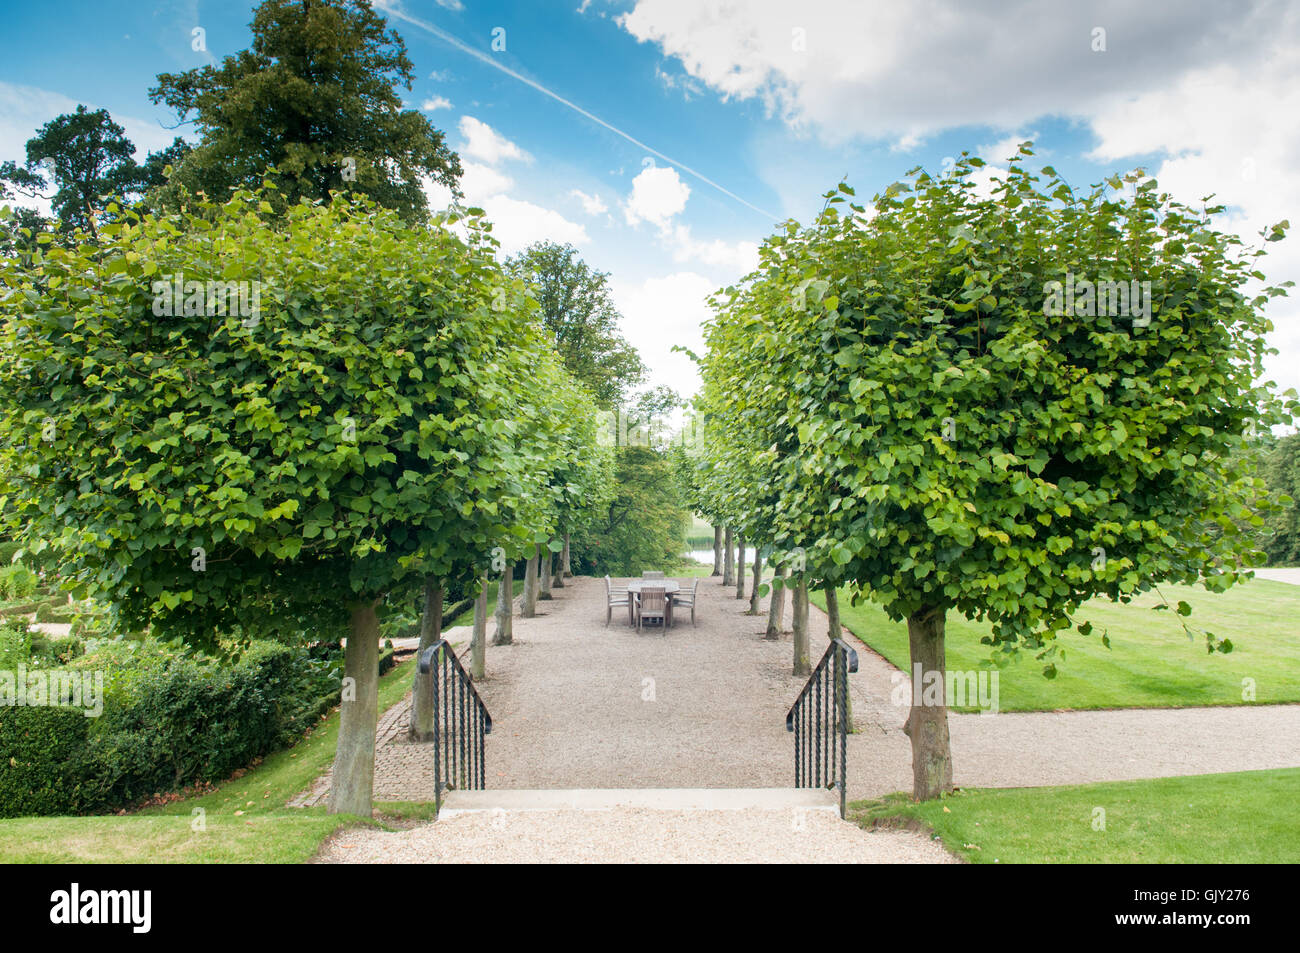 Formal garden entrance with shaped hedges and trees - Stock Image